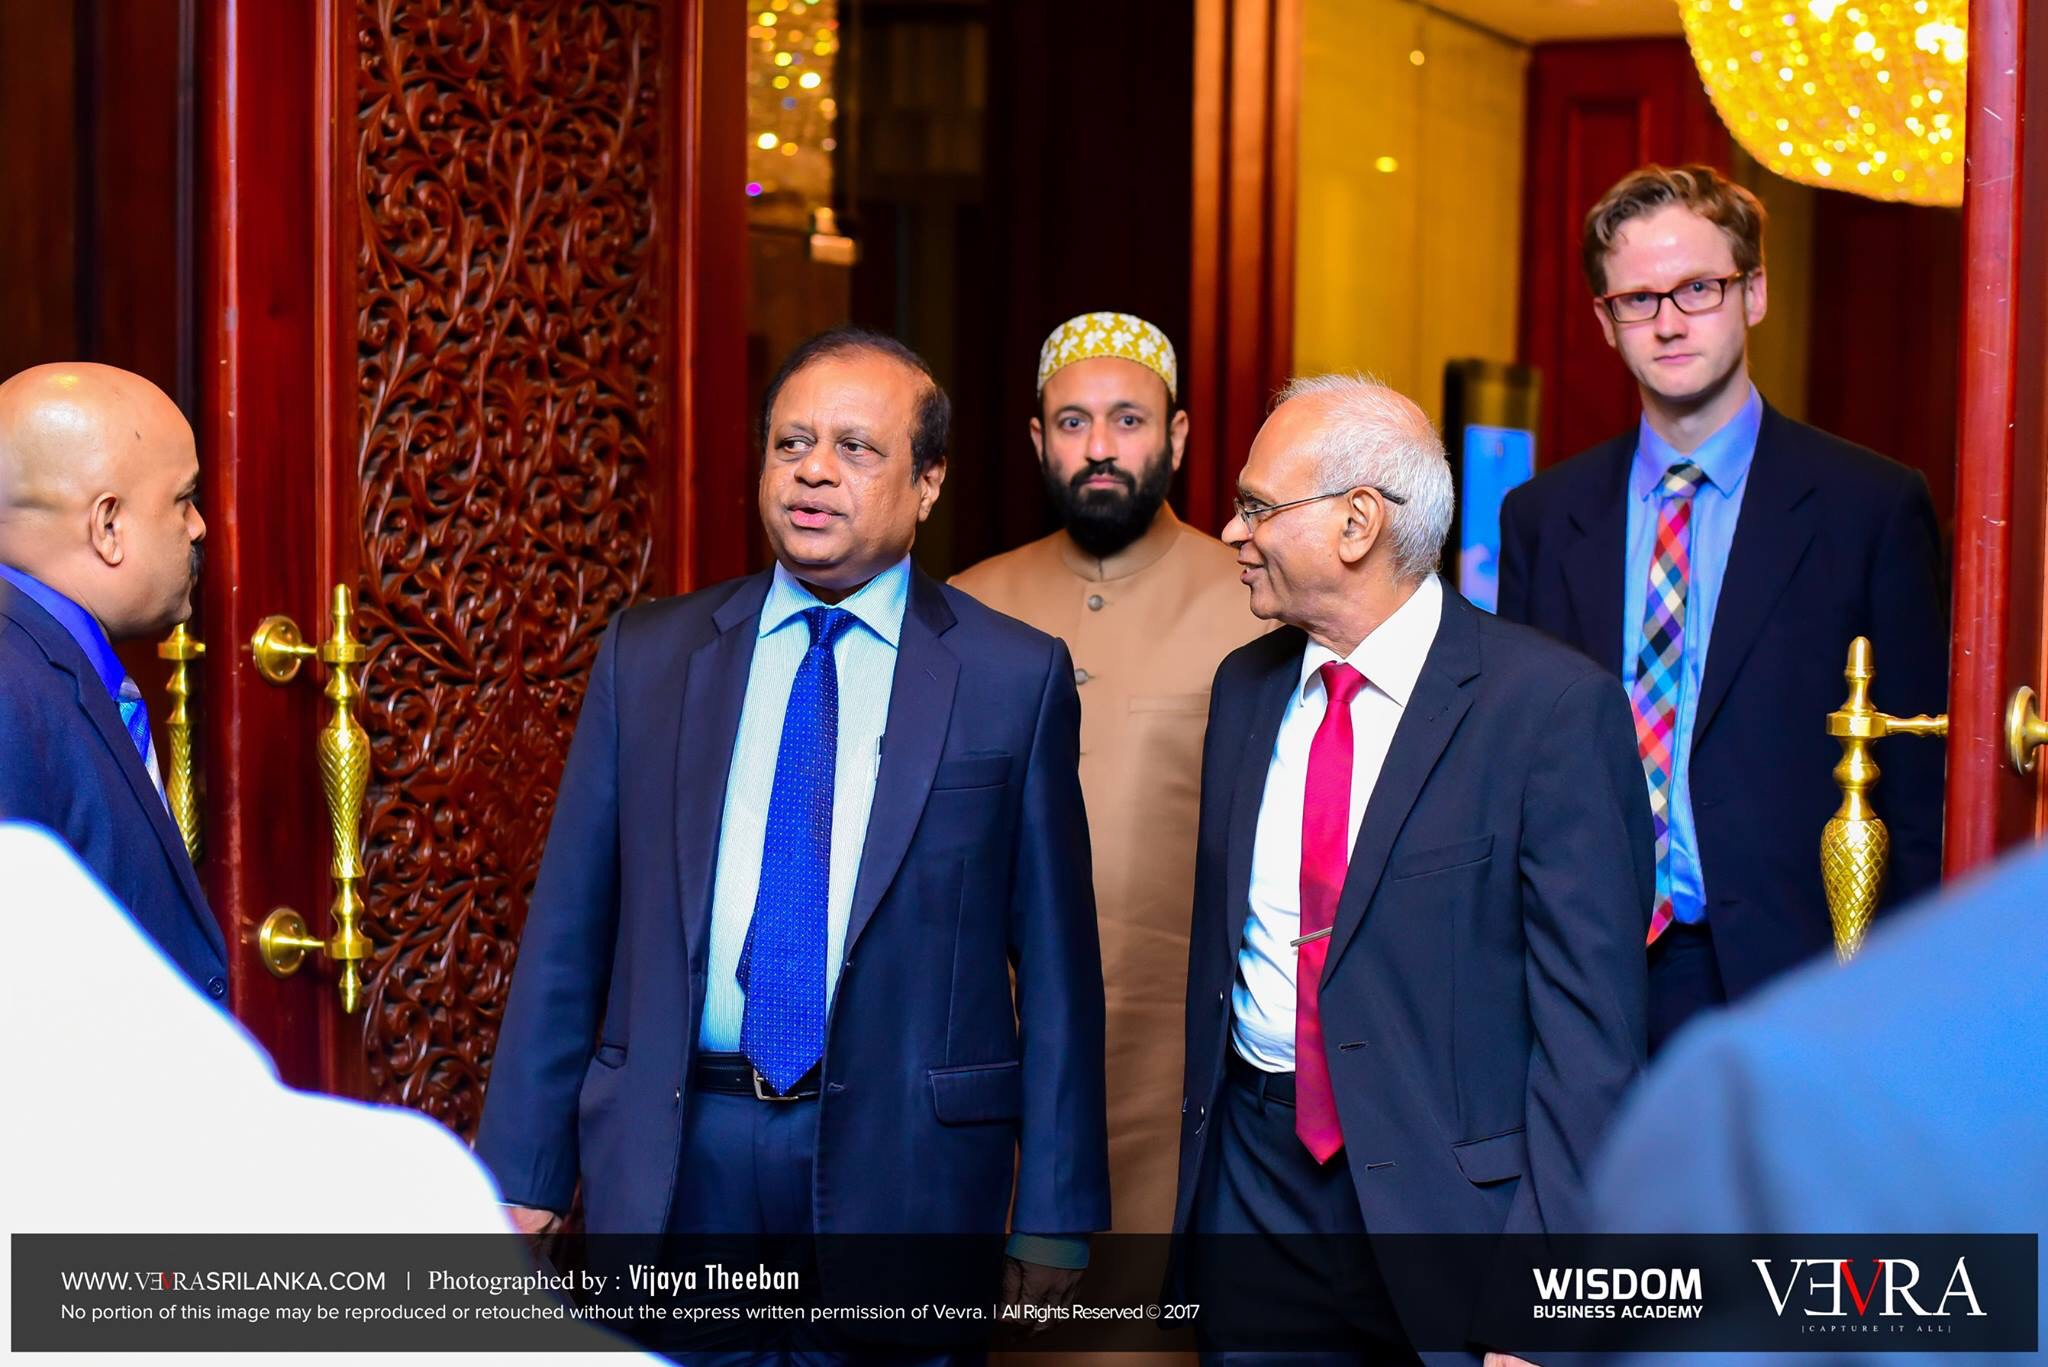 At Colombo Attending Event with Mr. K C Logesgwaran - Governor Western Province Colombo